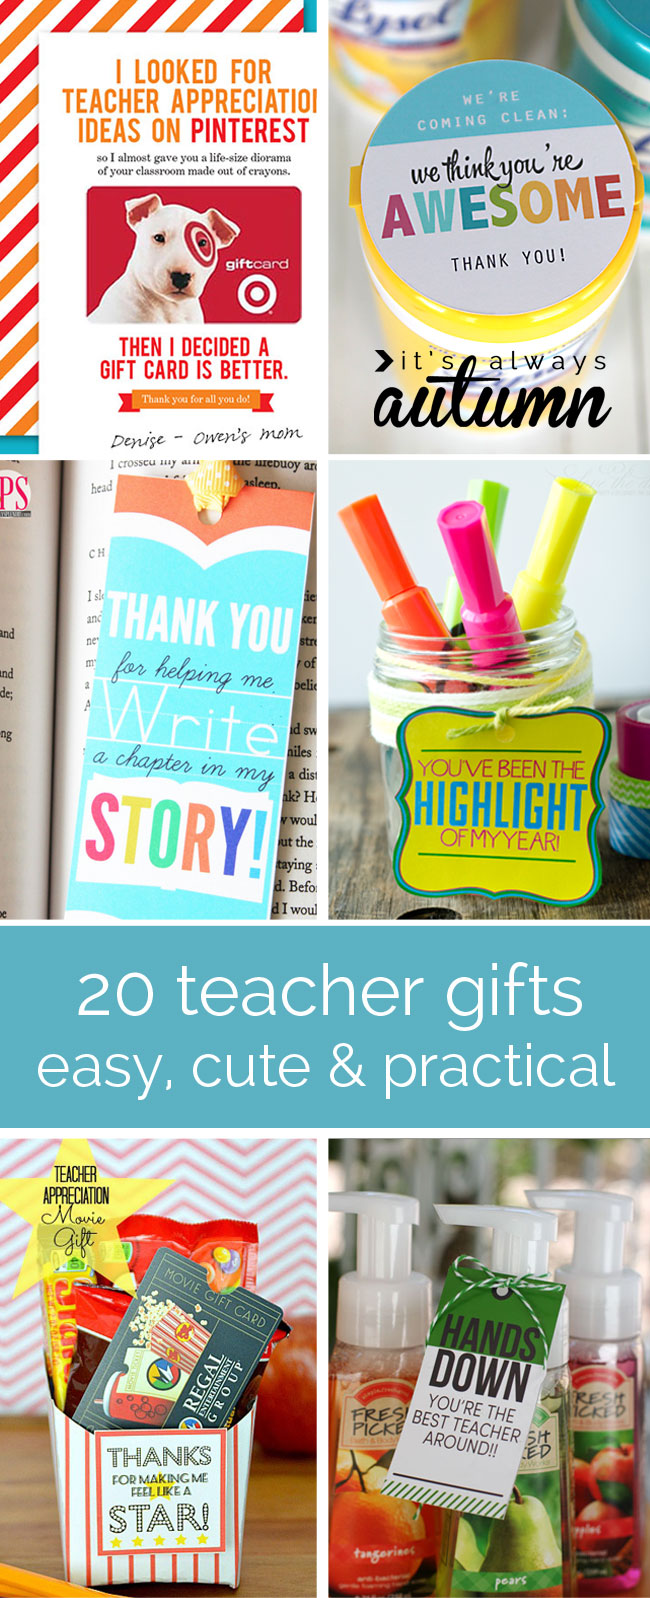 20 cheap, easy, cute & practical teacher appreciation gifts